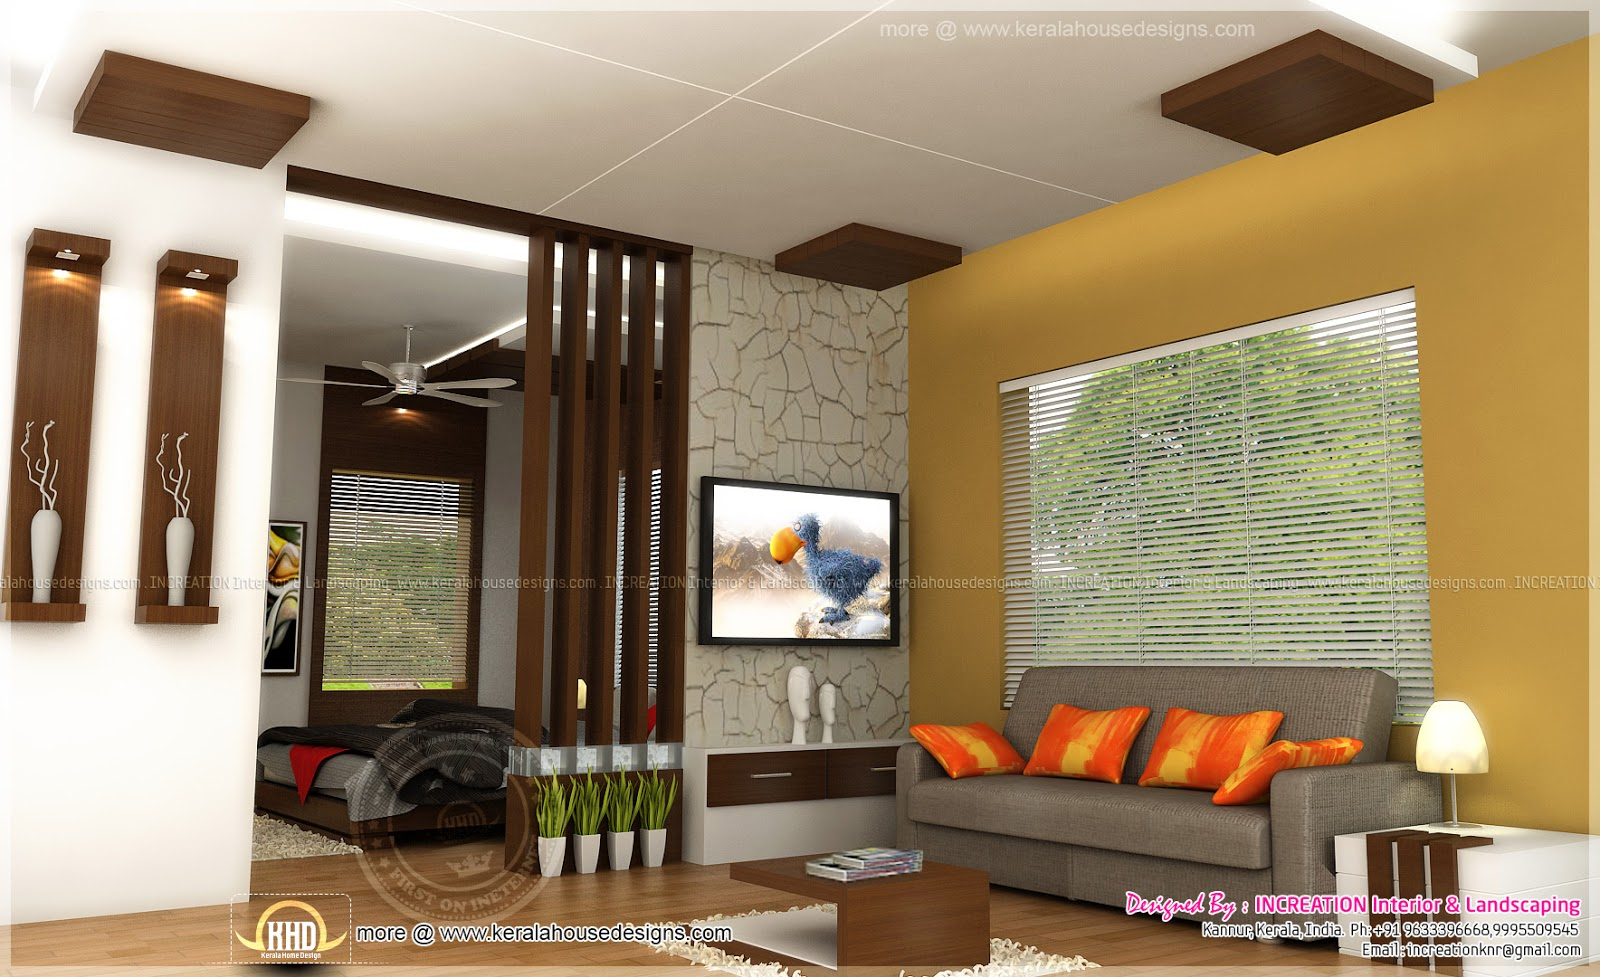 Interior Designs From Kannur, Kerala